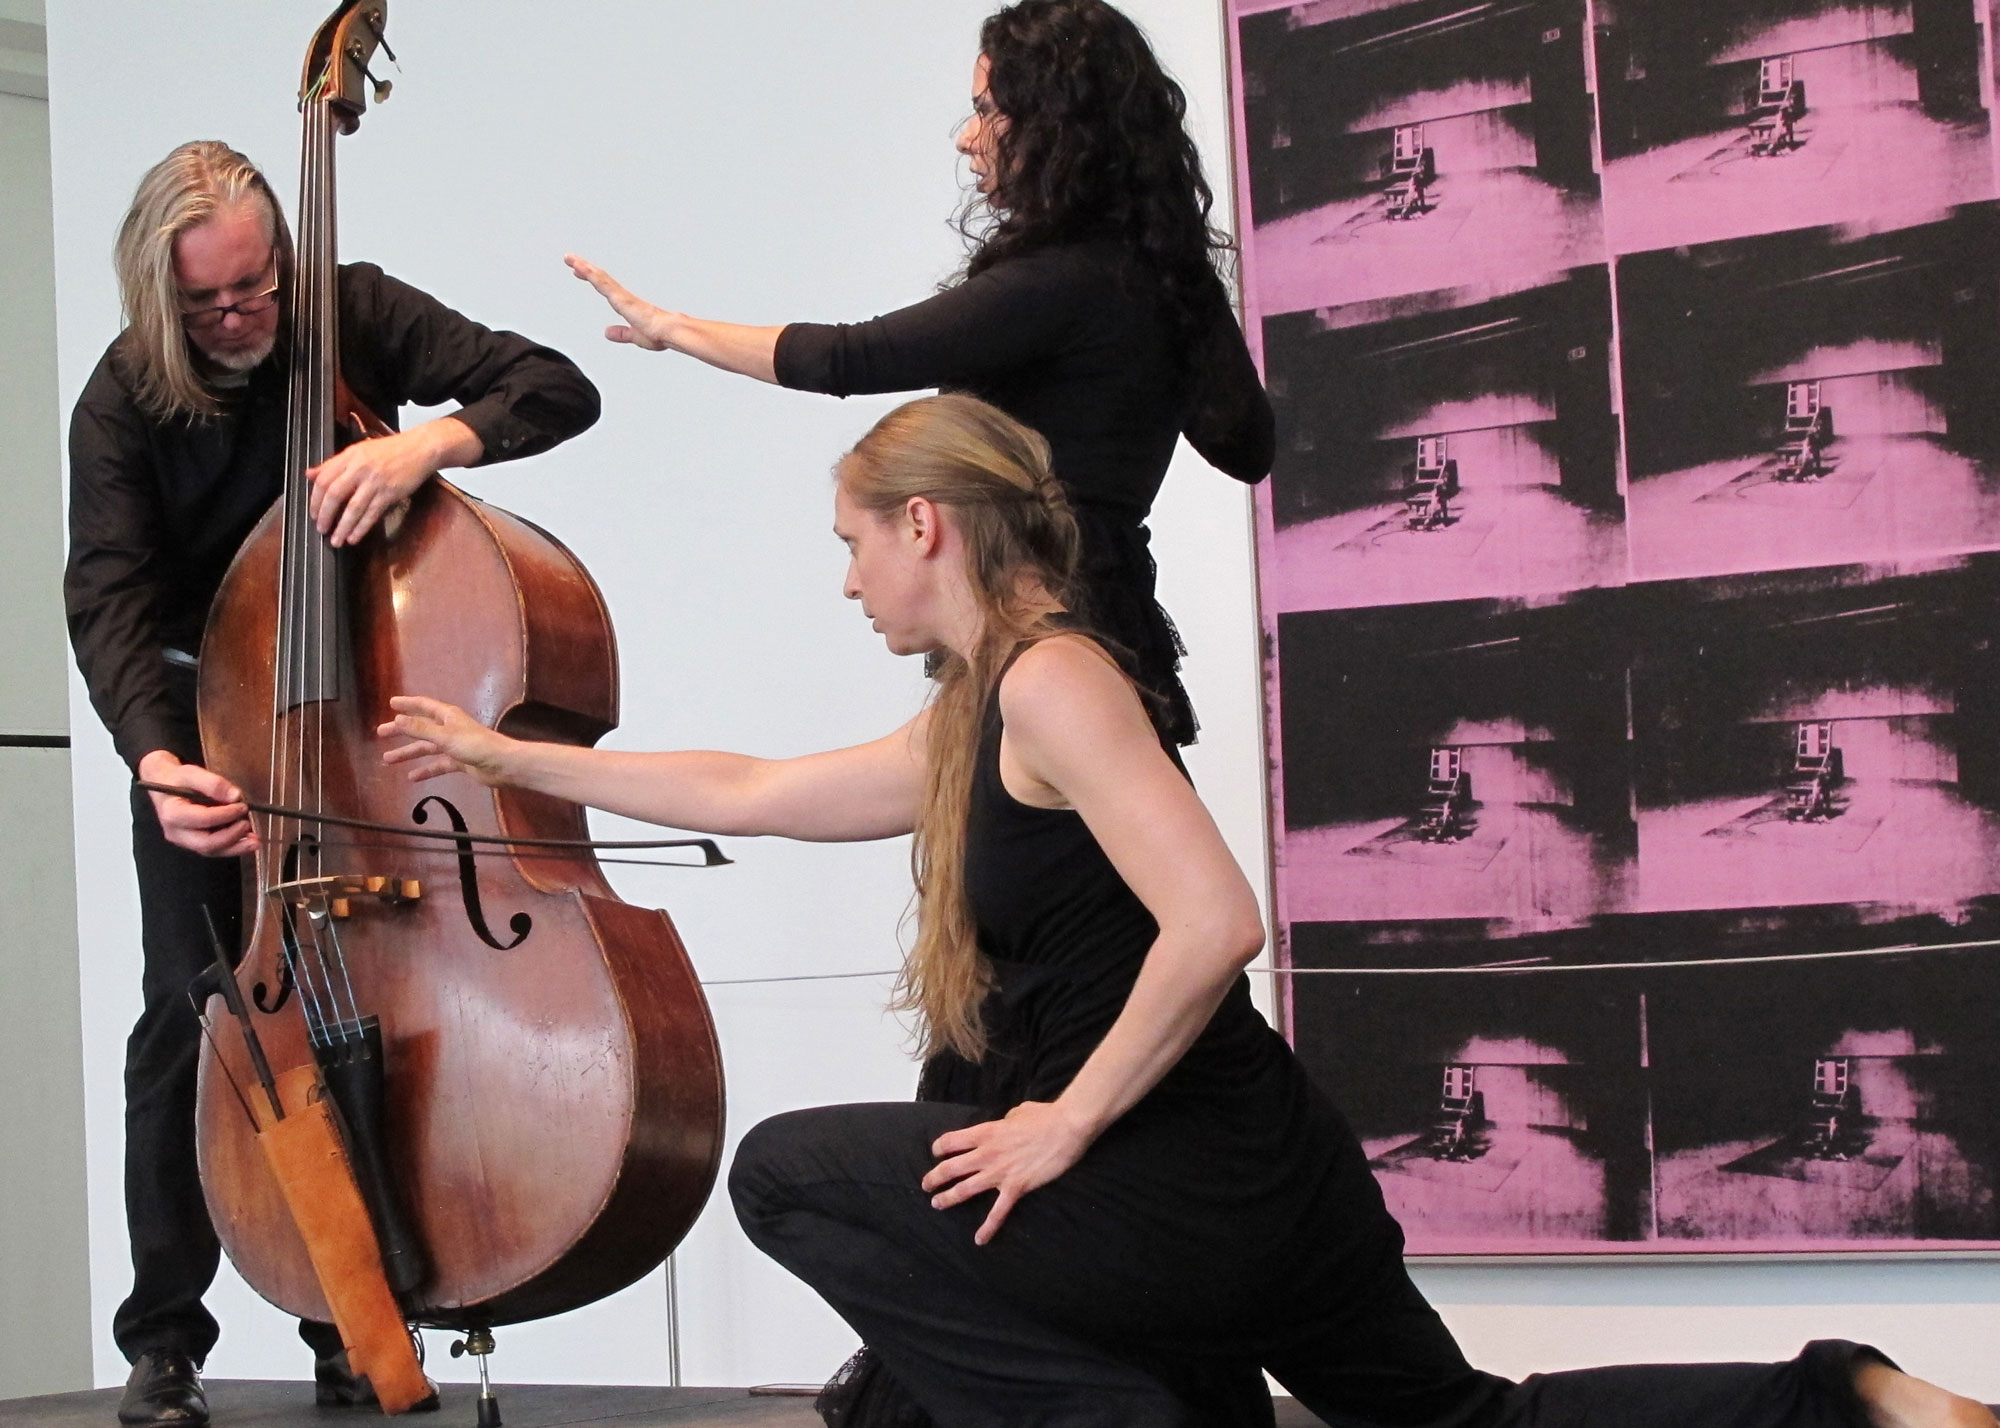 Siren on the Sabine. Misha Penton, soprano, concept text, artistic direction. Thomas Helton, double bass. Music devised by Misha Penton and Thomas Helton. Toni Valle and Lindsey McGill, dancers